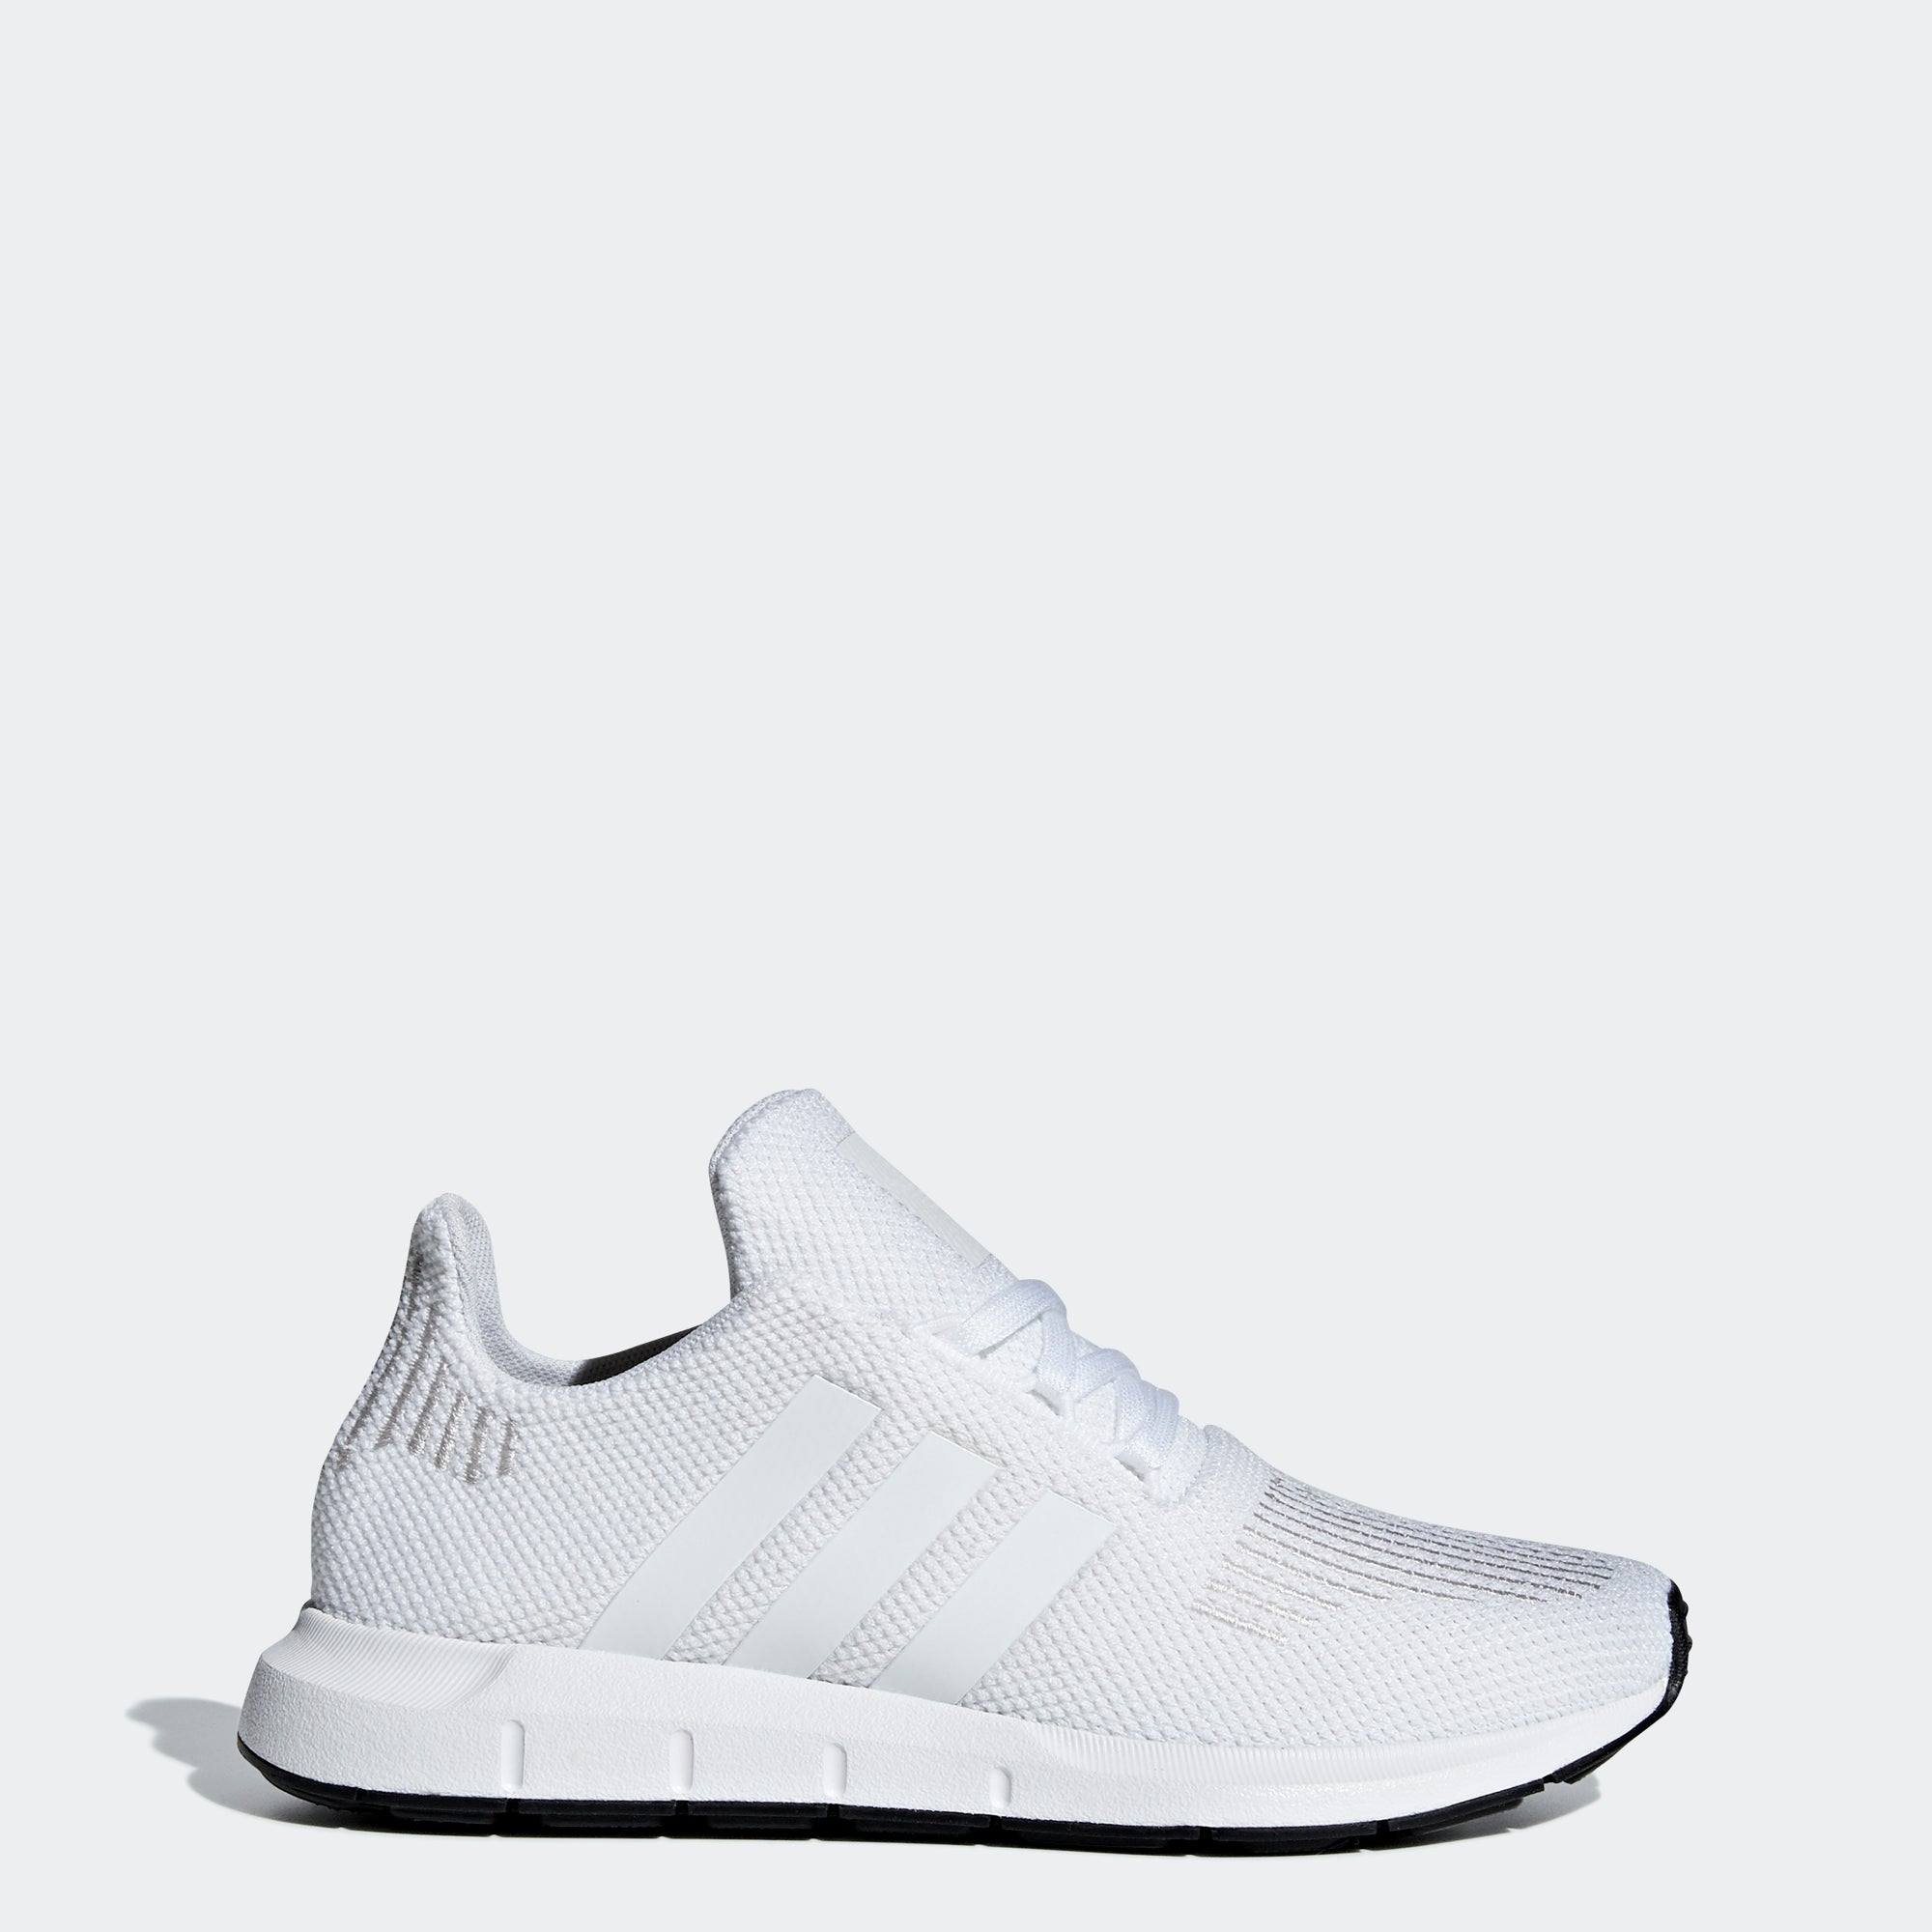 16be43bcf7d33 Kid s Adidas Originals Swift Run Shoes Crystal White  Core Black ...